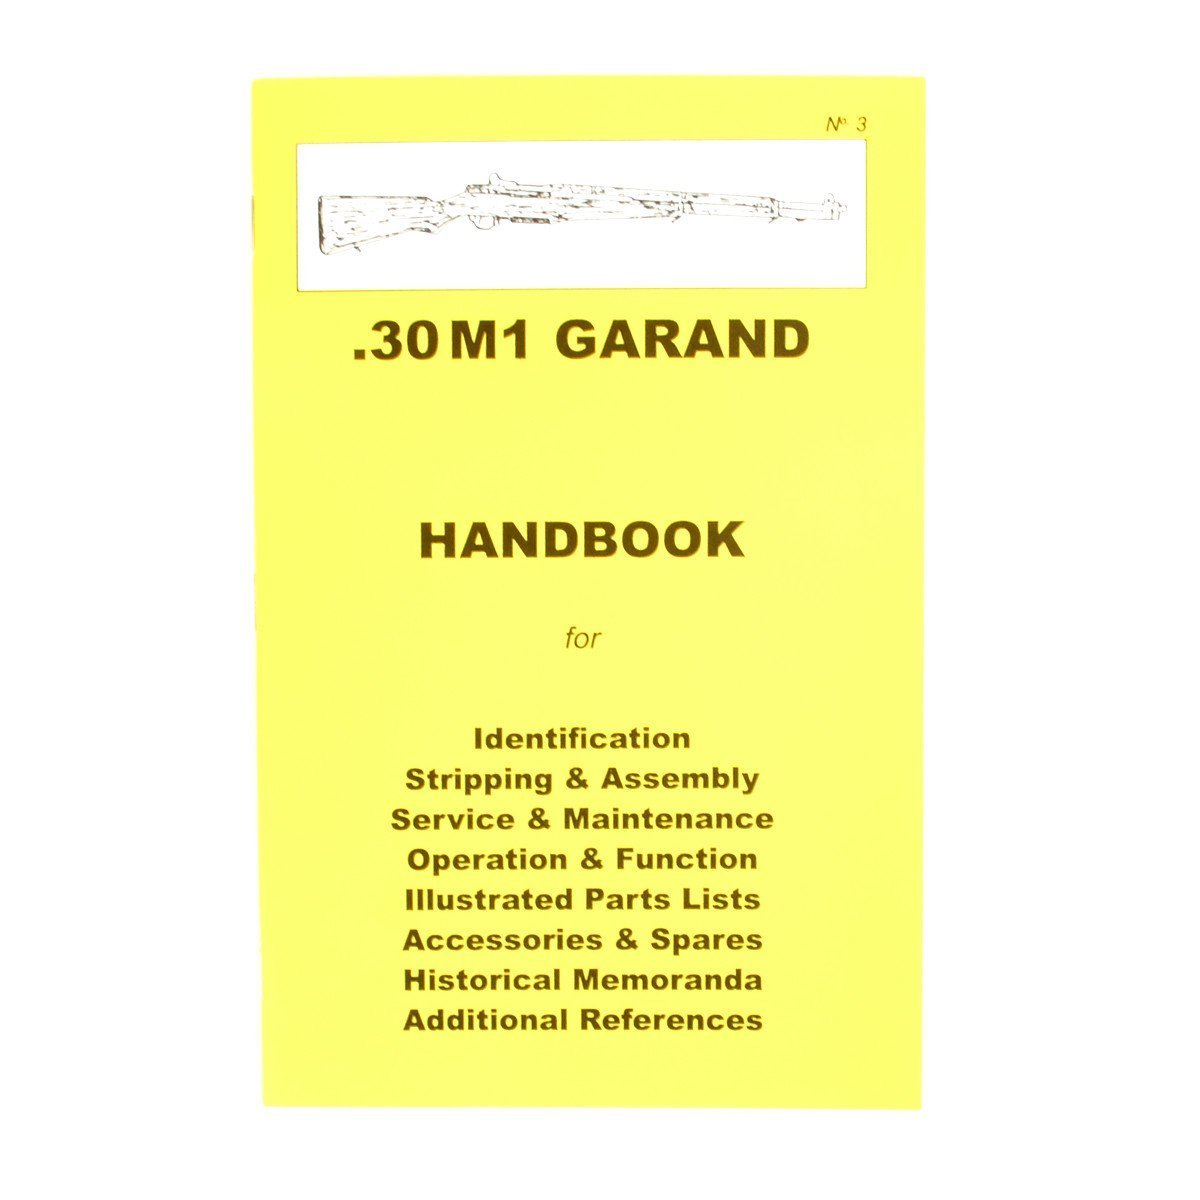 Technical Handbooks & Manuals